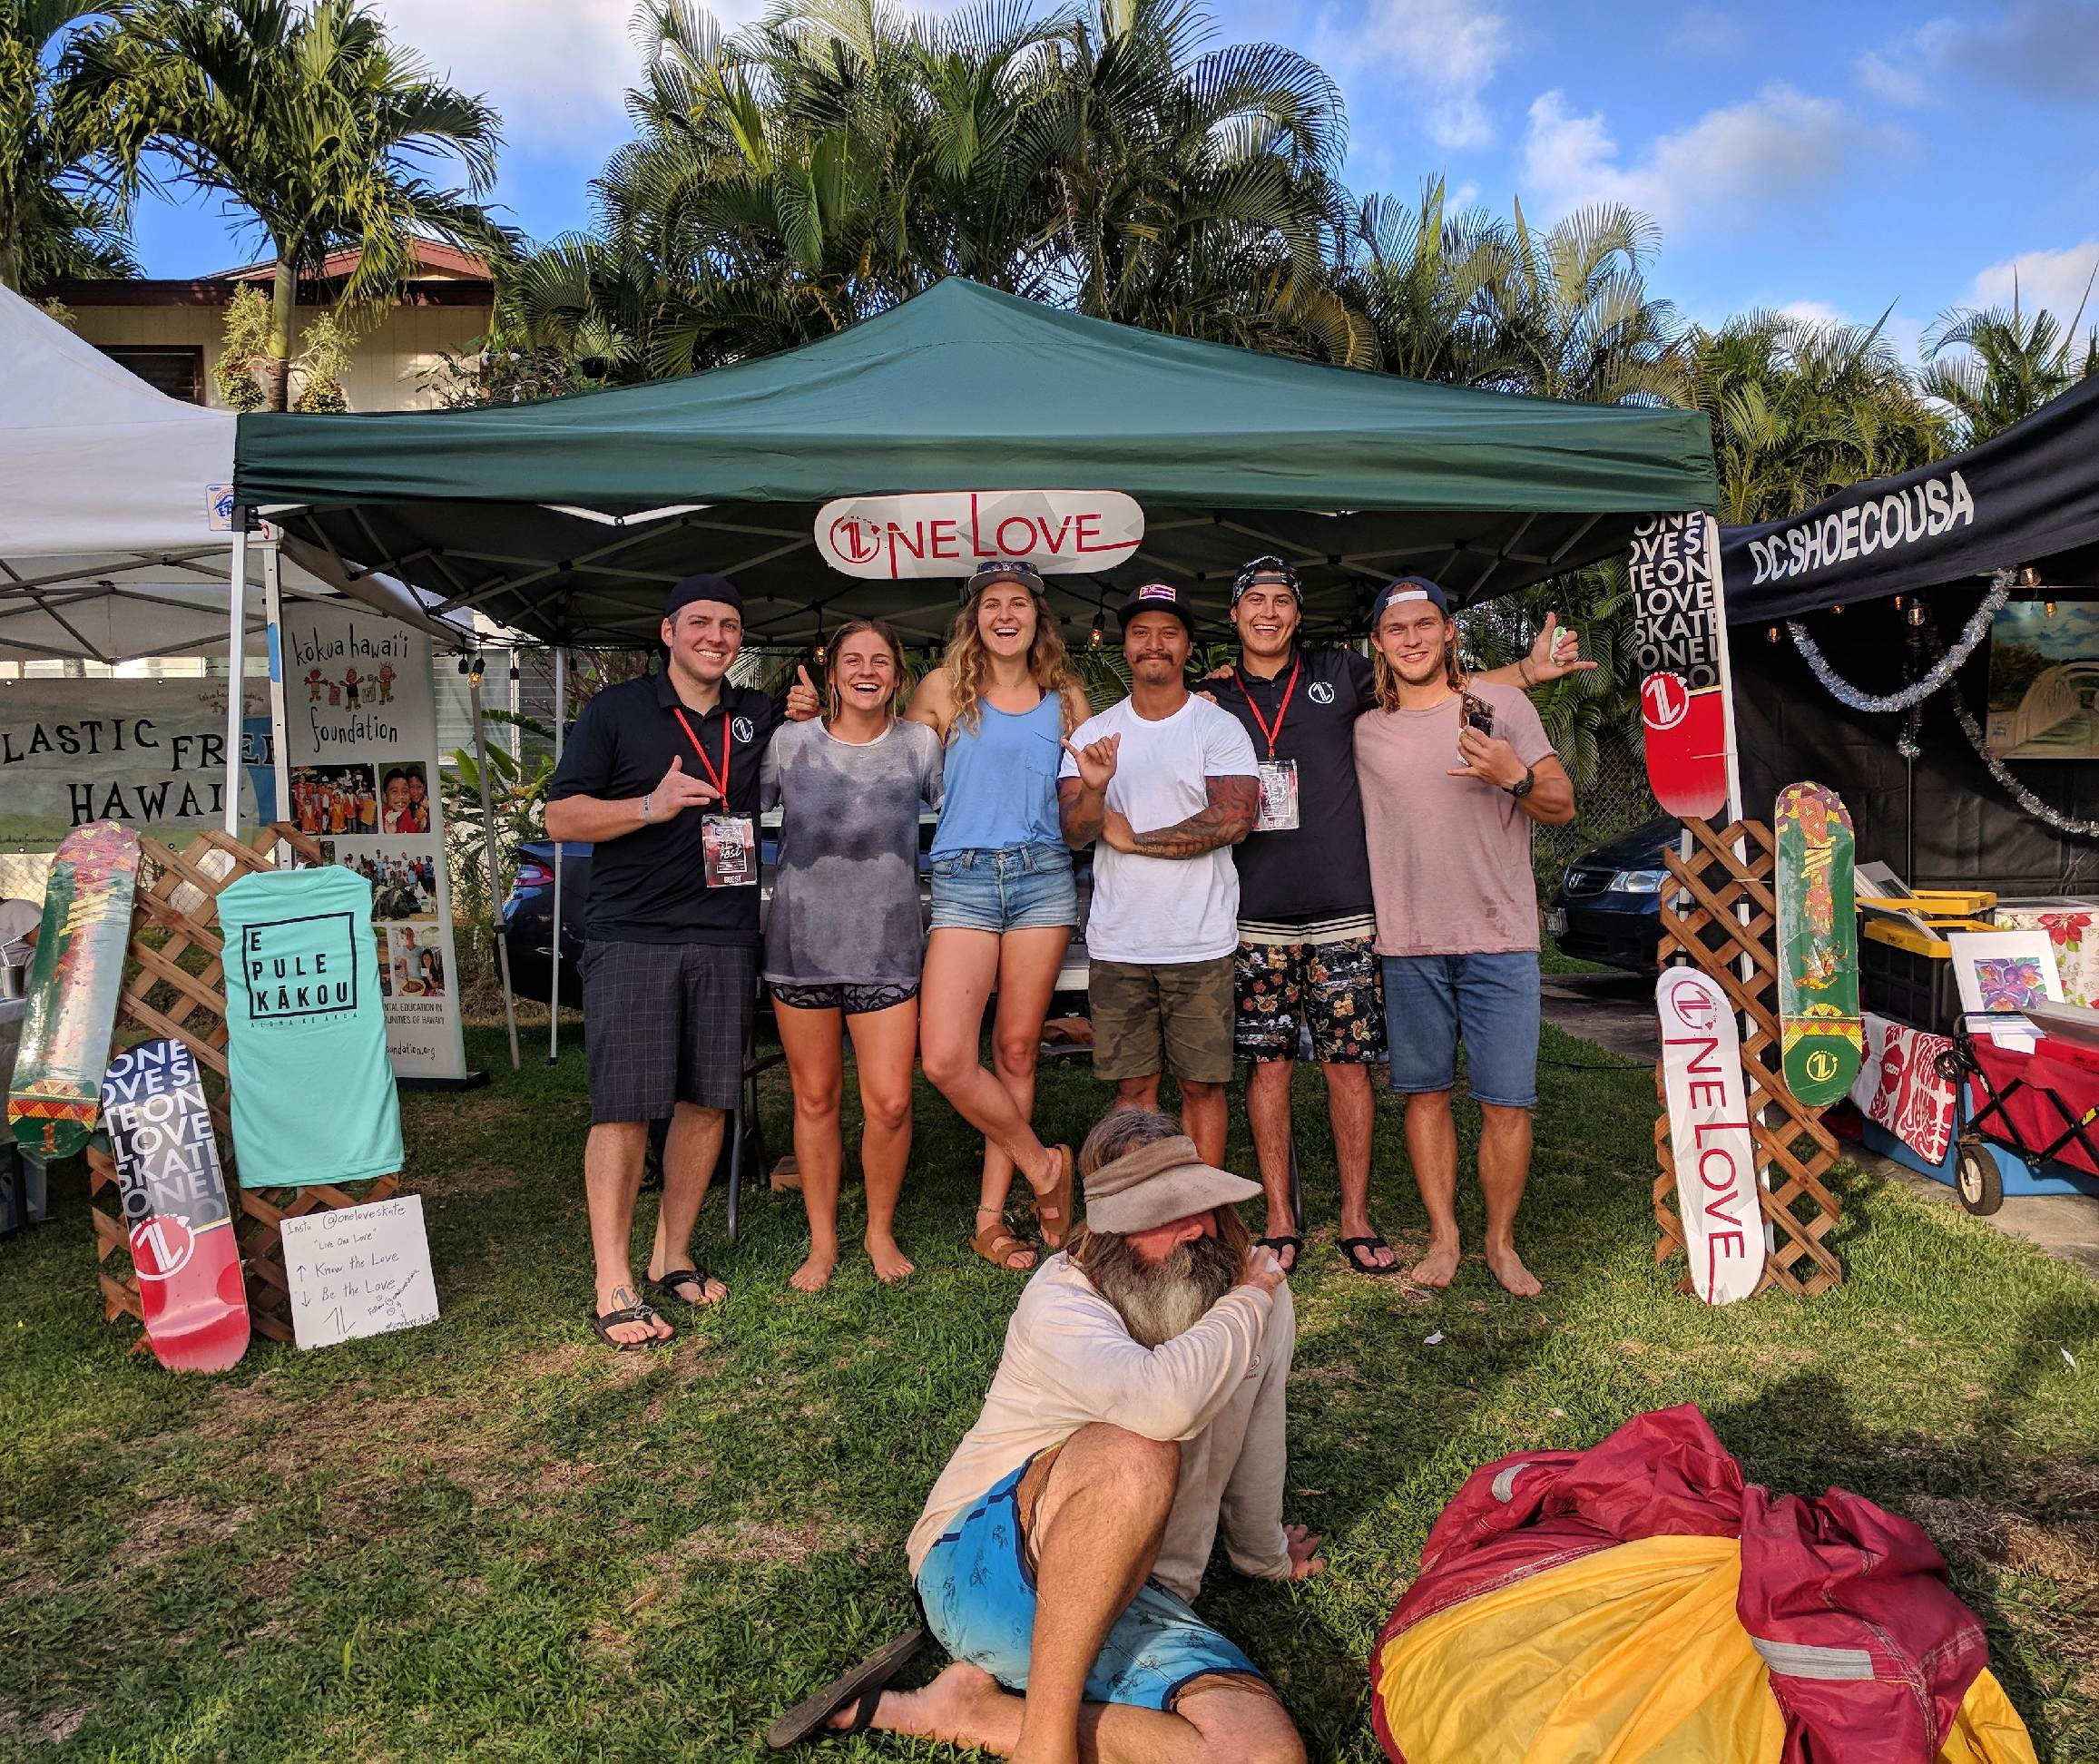 The event featured in freesurf went great Saturday evening with about 200 people. Stoked surfing the Nations joined us, and stoked for follow up as Abby (Outreach Leader Surfing the Nations)& Joe (Youth Pastor at Sunset Beach Community Church)lead #OneLoveSkate on a regular basis at Banzai skatepark in 2018.